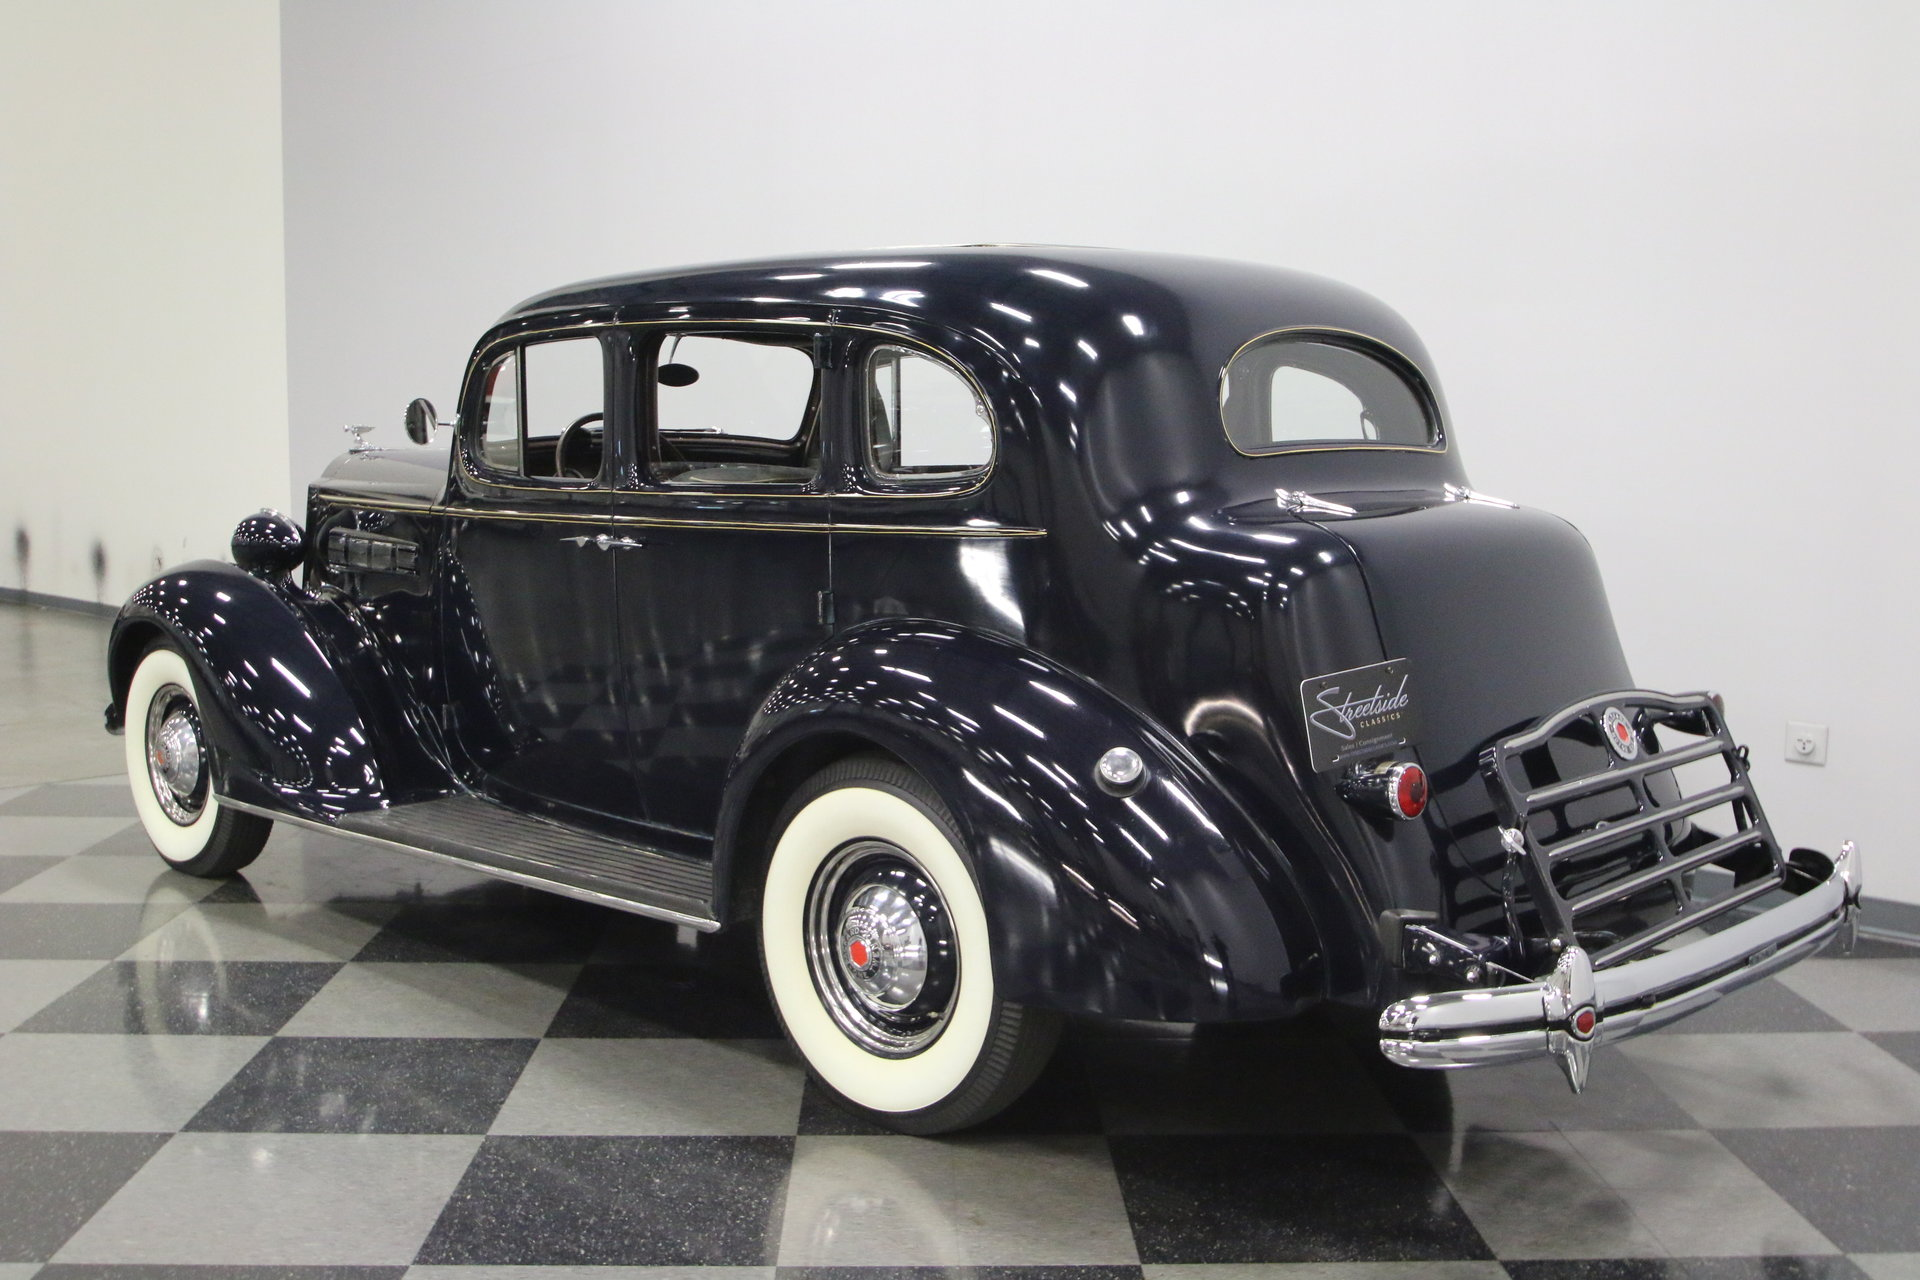 Mercedes Benz Of Fort Pierce >> 1937 Packard 120 | Streetside Classics - The Nation's